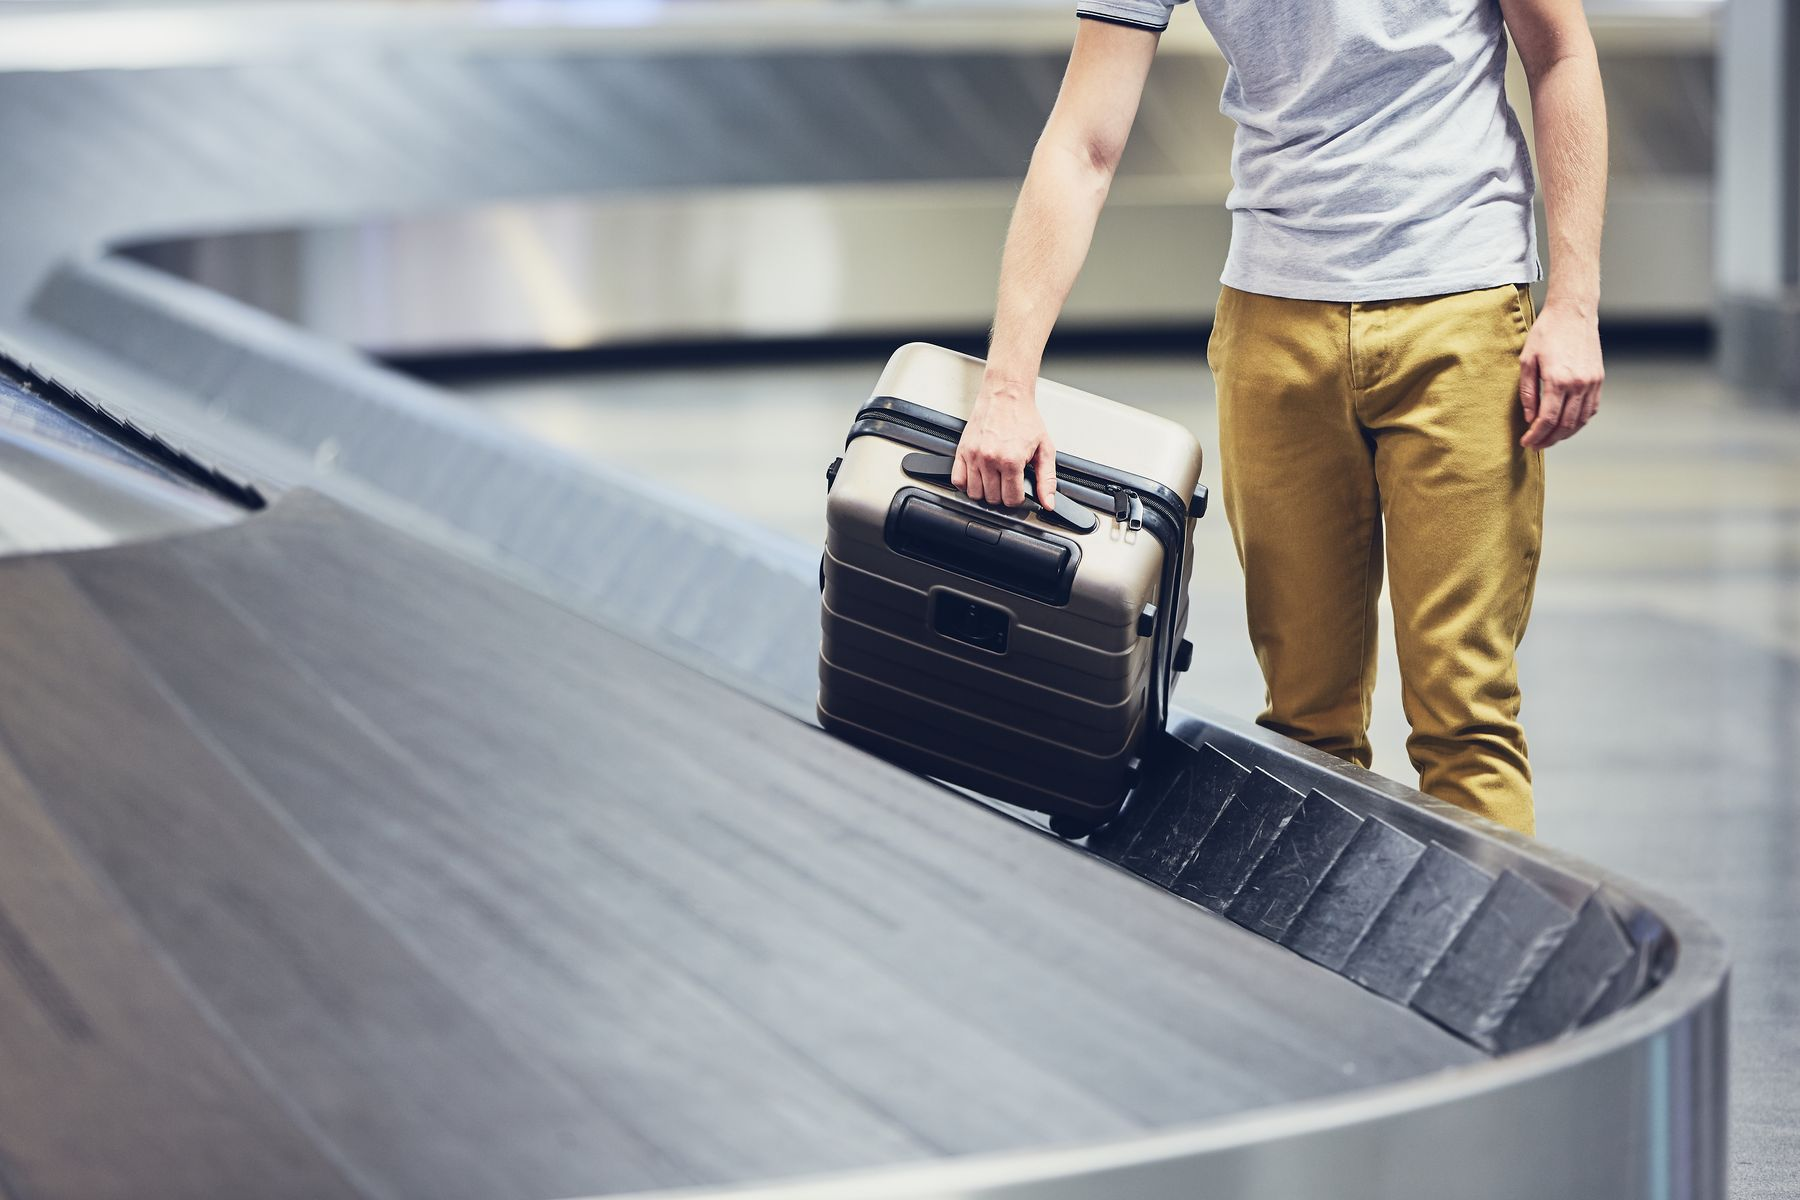 You can buy extra Ryanair luggage and pick it up at the baggage carousel